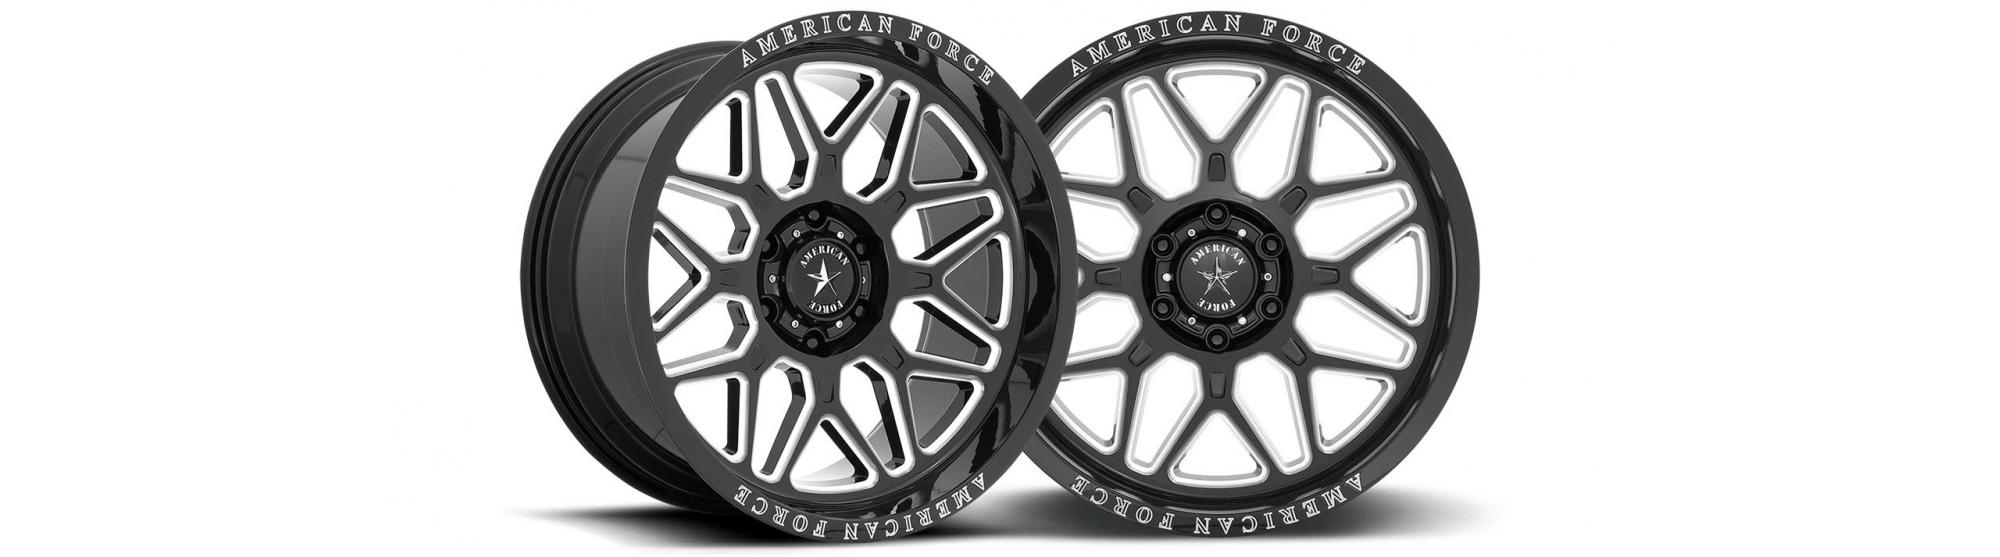 The All New Force Form AC001 Rush From American Force Wheels